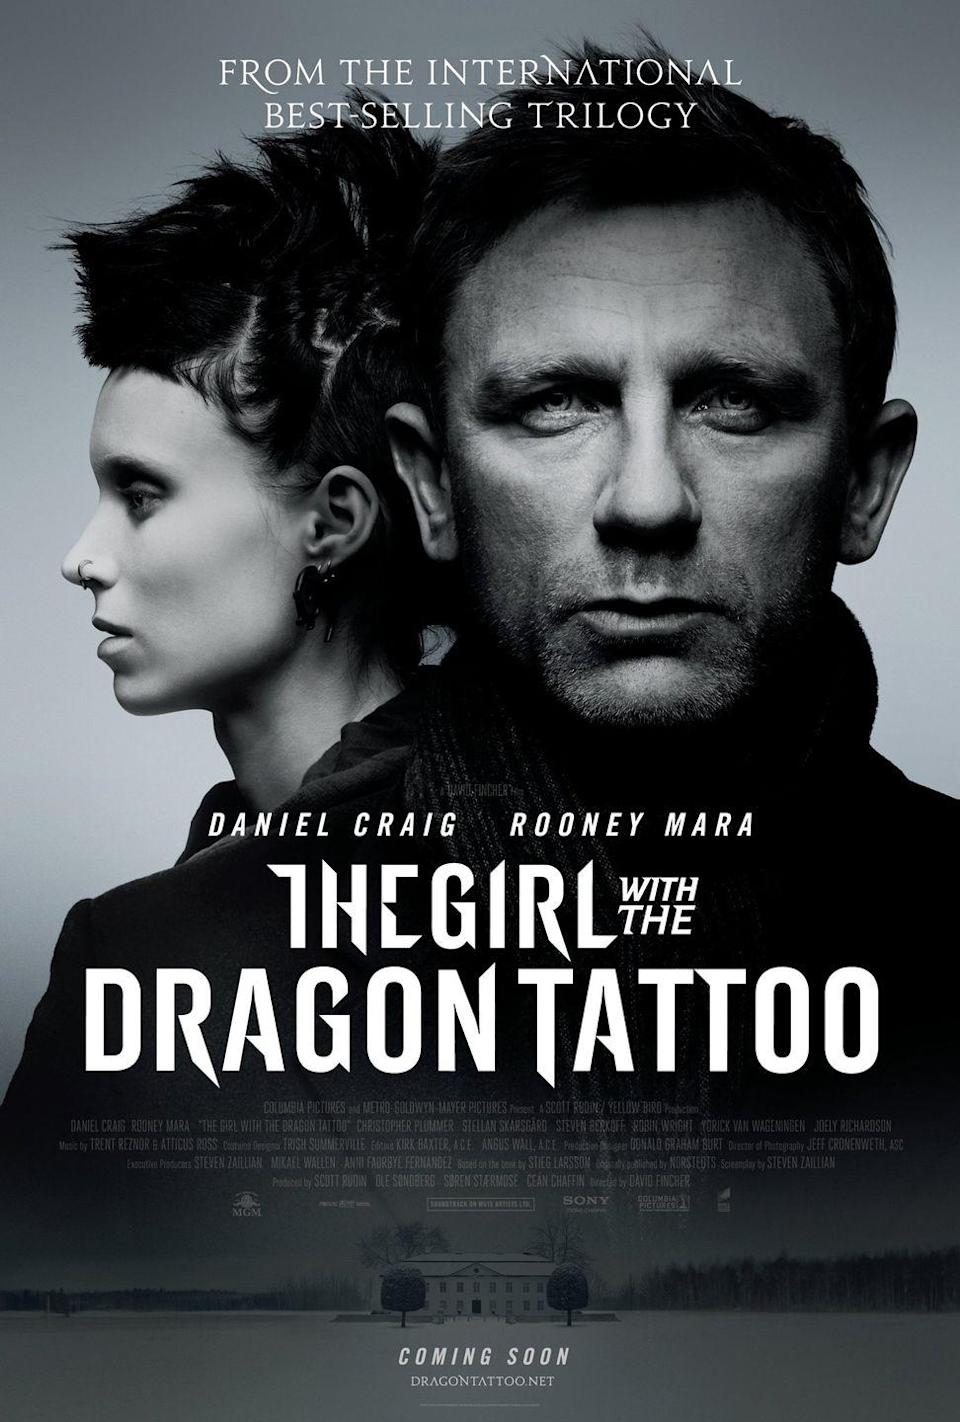 "<p>Based on the <a href=""https://www.amazon.com/Girl-Dragon-Tattoo-Millennium/dp/0307949486?tag=syn-yahoo-20&ascsubtag=%5Bartid%7C10055.g.34396232%5Bsrc%7Cyahoo-us"" rel=""nofollow noopener"" target=""_blank"" data-ylk=""slk:2005 novel of the same name"" class=""link rapid-noclick-resp"">2005 novel of the same name</a>, this psychological crime thriller centers around a journalist's investigation into a 40-year-old murder case of a mysterious woman from a wealthy family. (Warning: There's plenty of violence in this one, which means it definitely isn't for the faint of heart!)<br></p><p><a class=""link rapid-noclick-resp"" href=""https://www.amazon.com/Girl-Dragon-Tattoo-Daniel-Craig/dp/B007FH9GA6?tag=syn-yahoo-20&ascsubtag=%5Bartid%7C10055.g.34396232%5Bsrc%7Cyahoo-us"" rel=""nofollow noopener"" target=""_blank"" data-ylk=""slk:WATCH ON AMAZON"">WATCH ON AMAZON</a></p><p><strong>RELATED</strong>: <a href=""https://www.goodhousekeeping.com/life/entertainment/g31958601/best-psychological-thriller-books/"" rel=""nofollow noopener"" target=""_blank"" data-ylk=""slk:The 35 Best Psychological Thriller Books to Scare Yourself Silly"" class=""link rapid-noclick-resp"">The 35 Best Psychological Thriller Books to Scare Yourself Silly</a></p>"